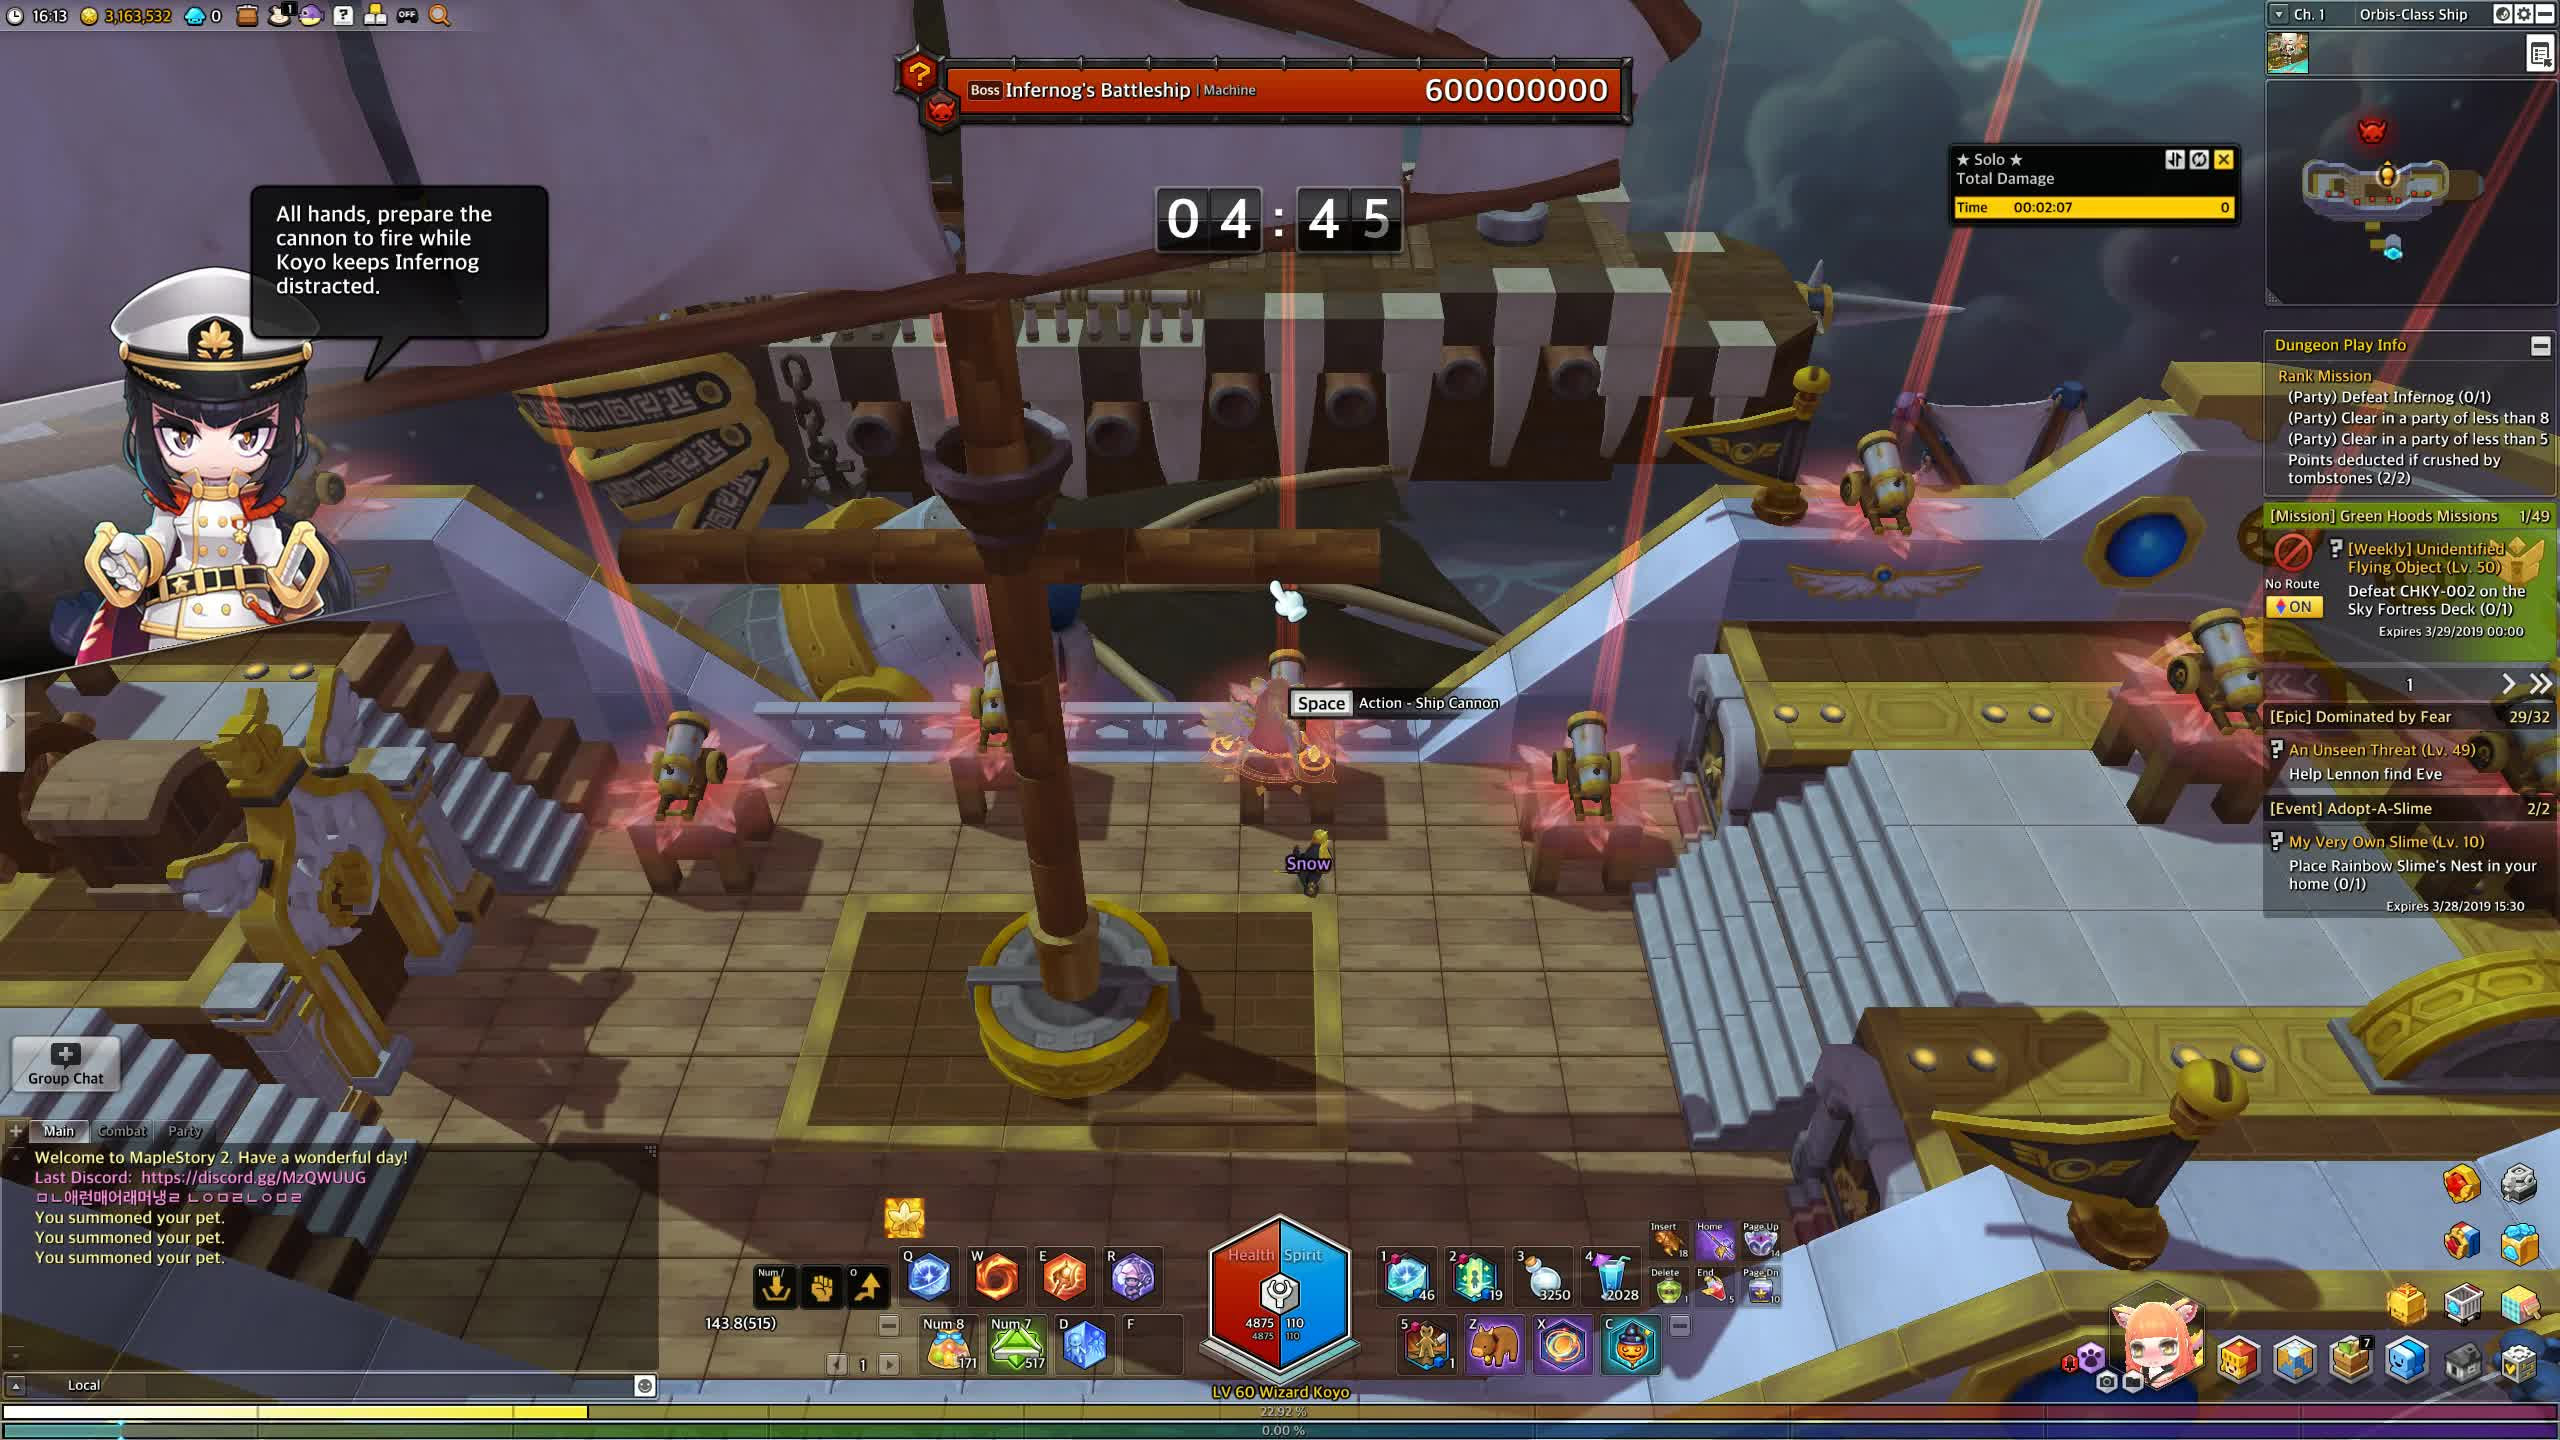 maplestory2, vlc-record-2019-03-27-13h35m48s-Maple Story 2 2019.03.27 - 13.13.13.01.mp4- GIFs